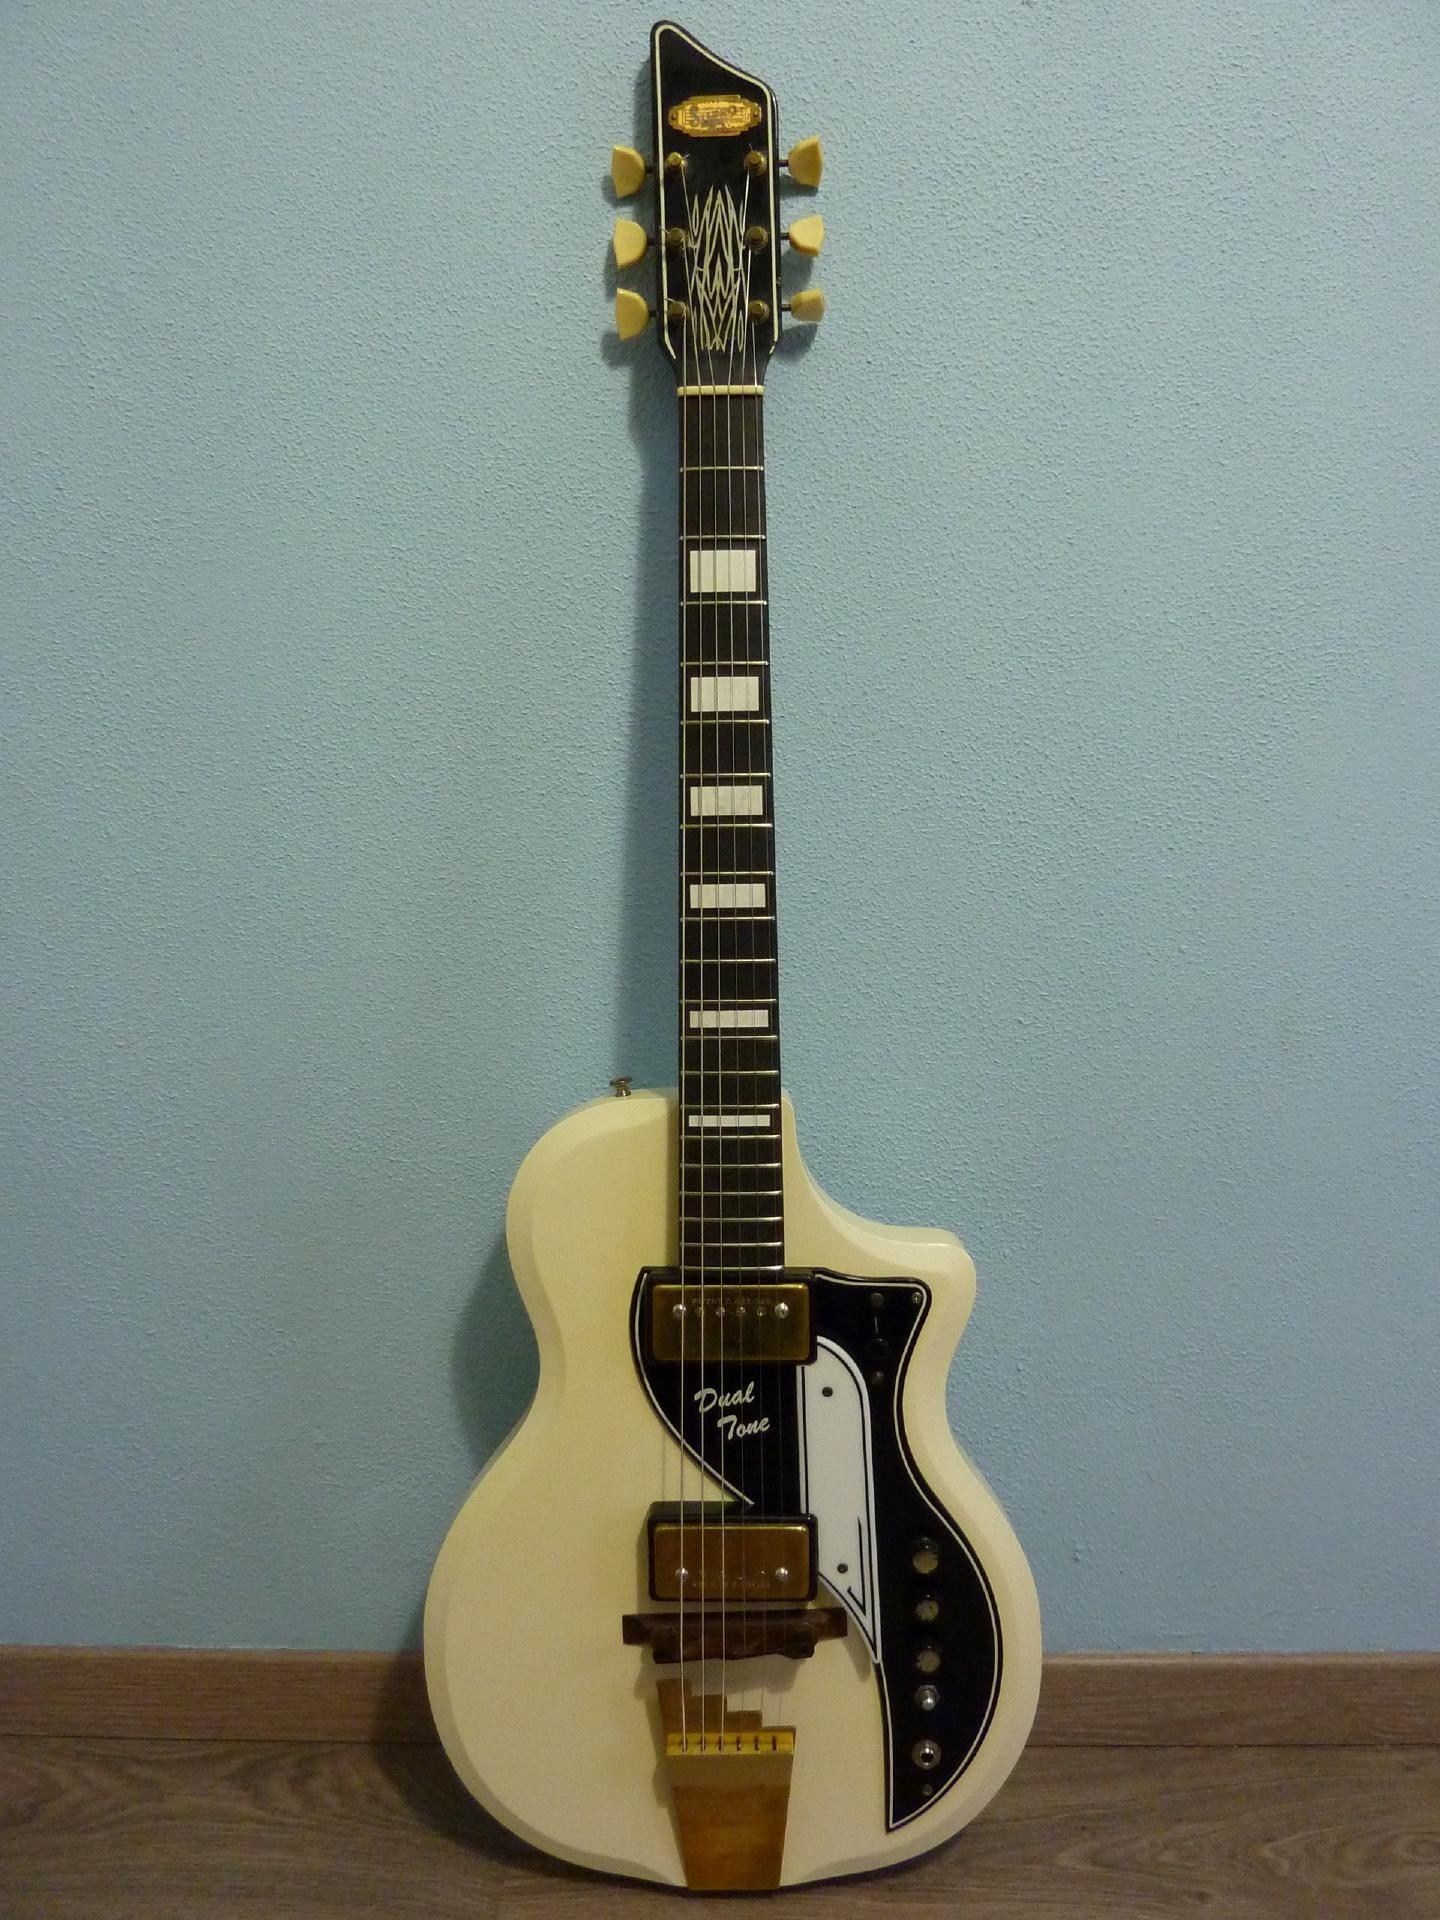 1958 Supro Dual Tone Buy Vintage Supro Guitar At Hender